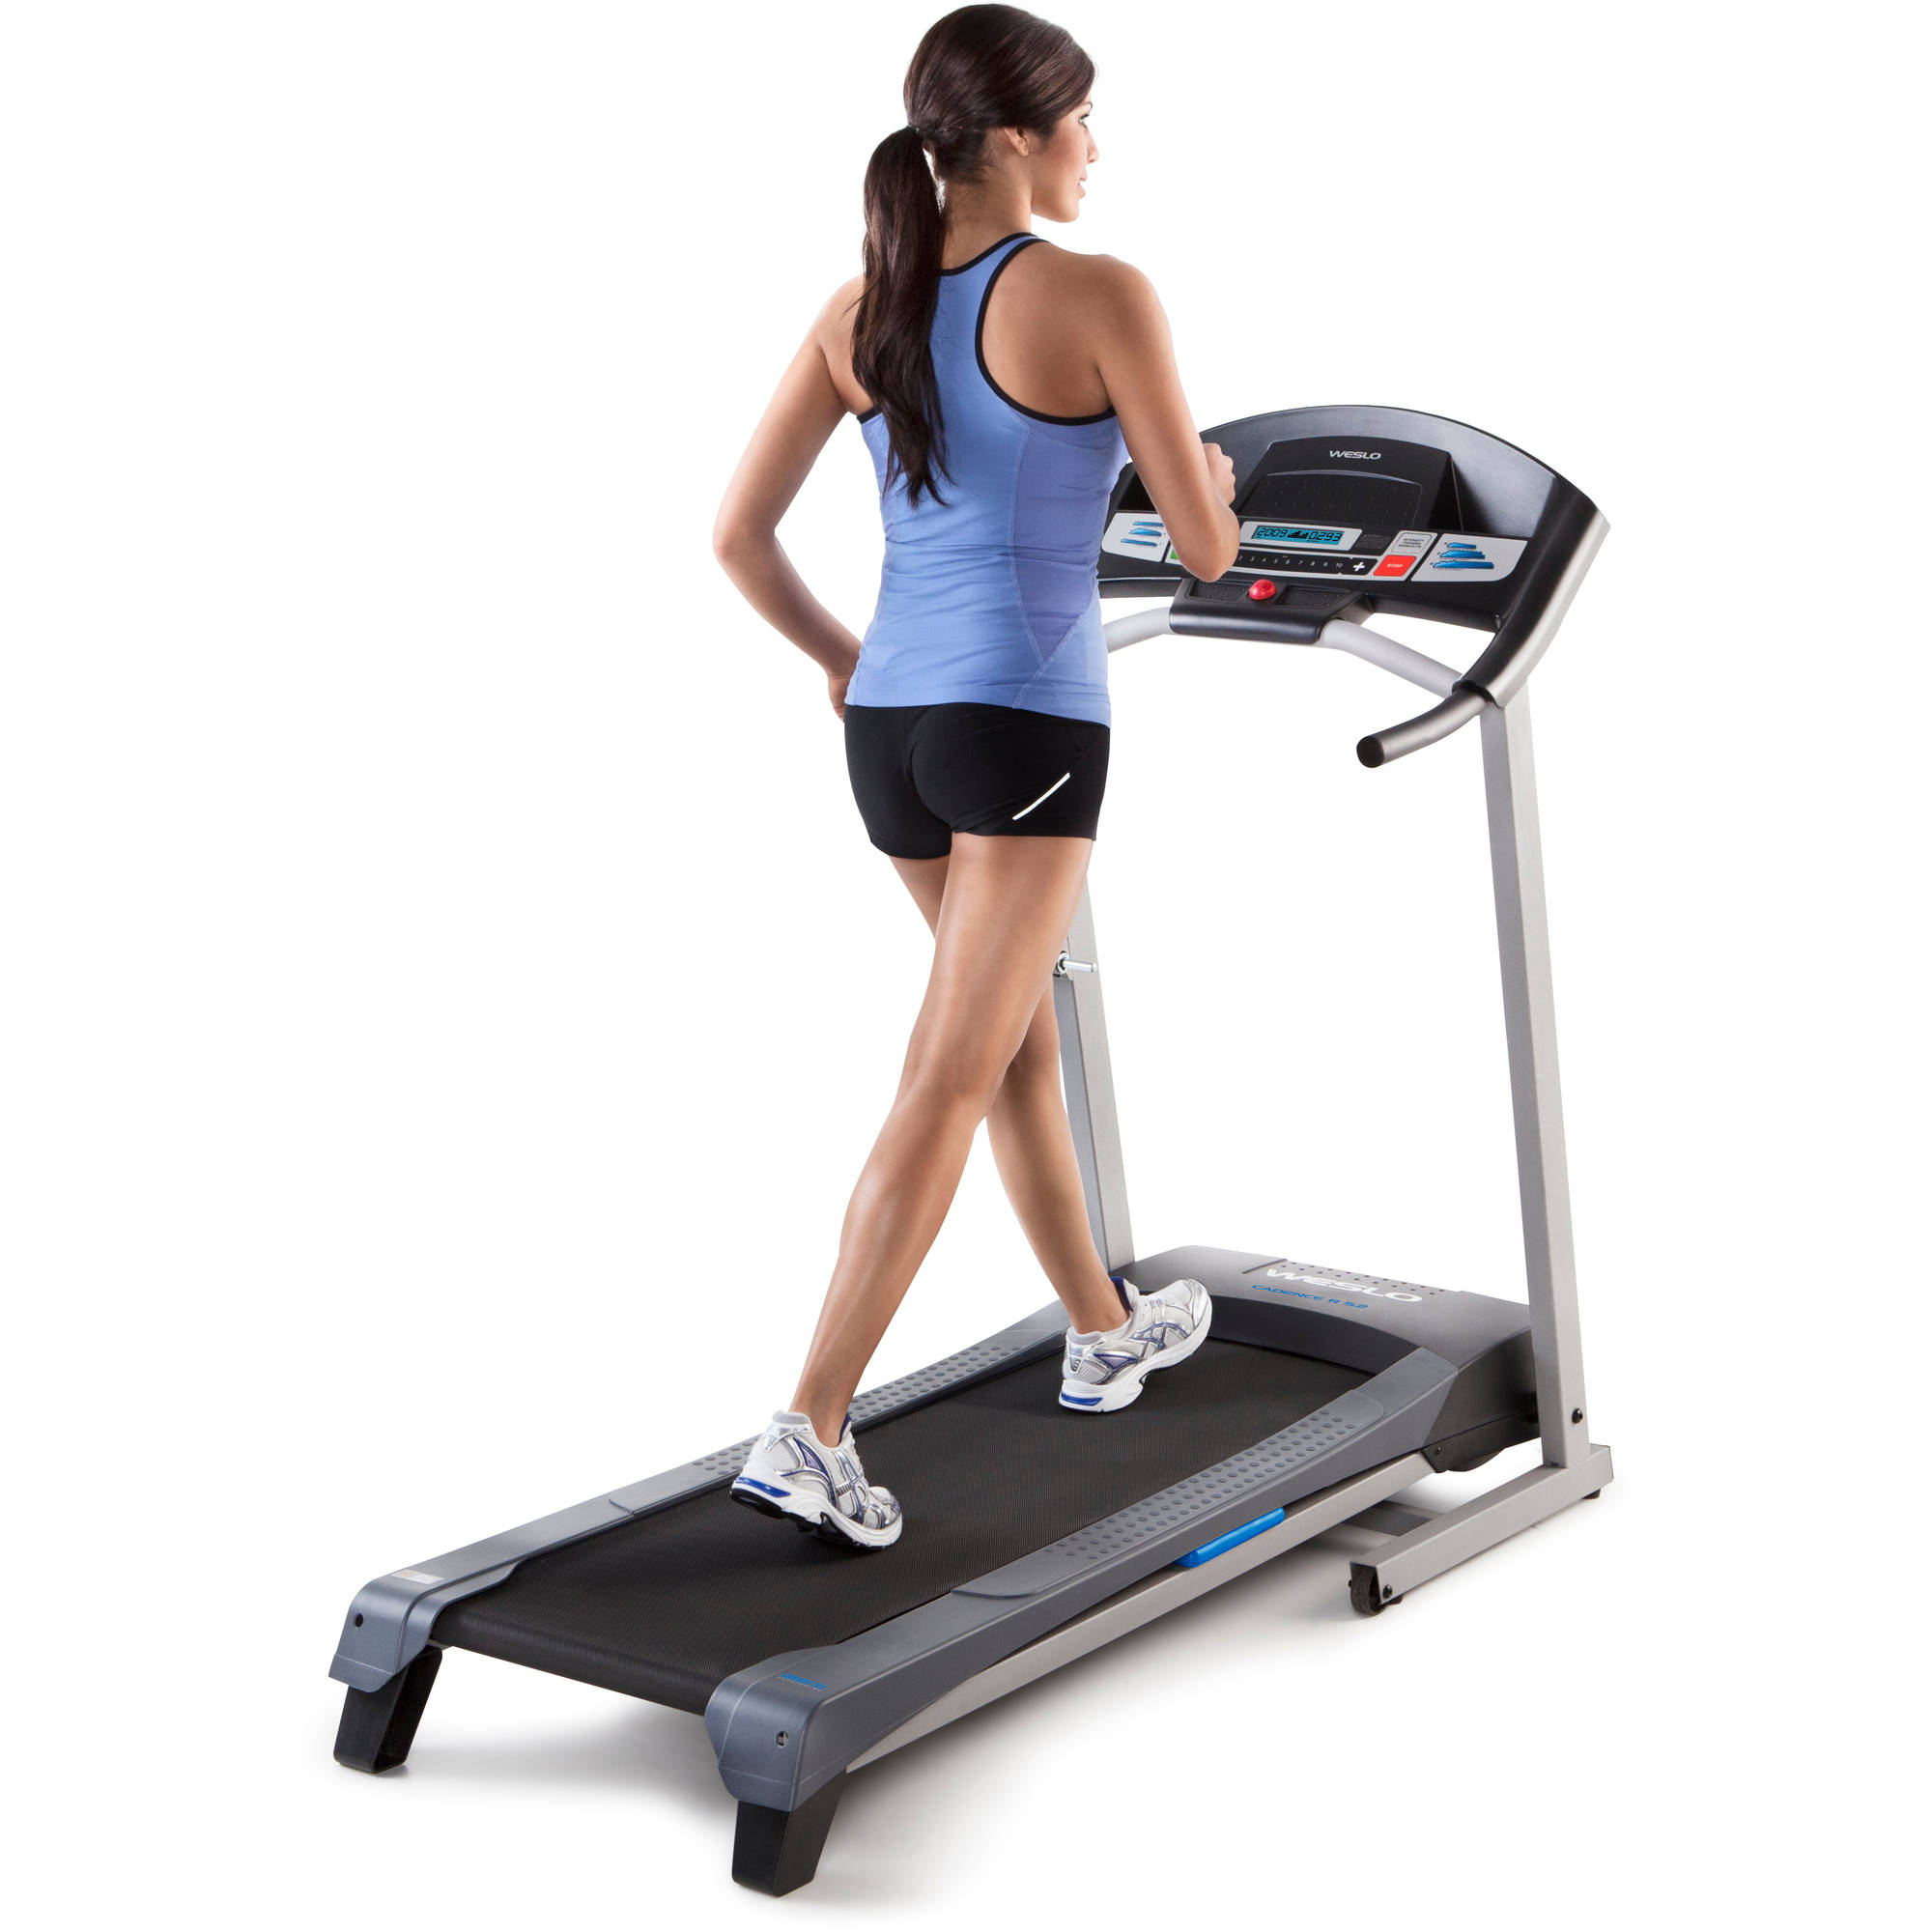 Weslo Cadence R 5.2 Folding Treadmill with Adjustable Incline